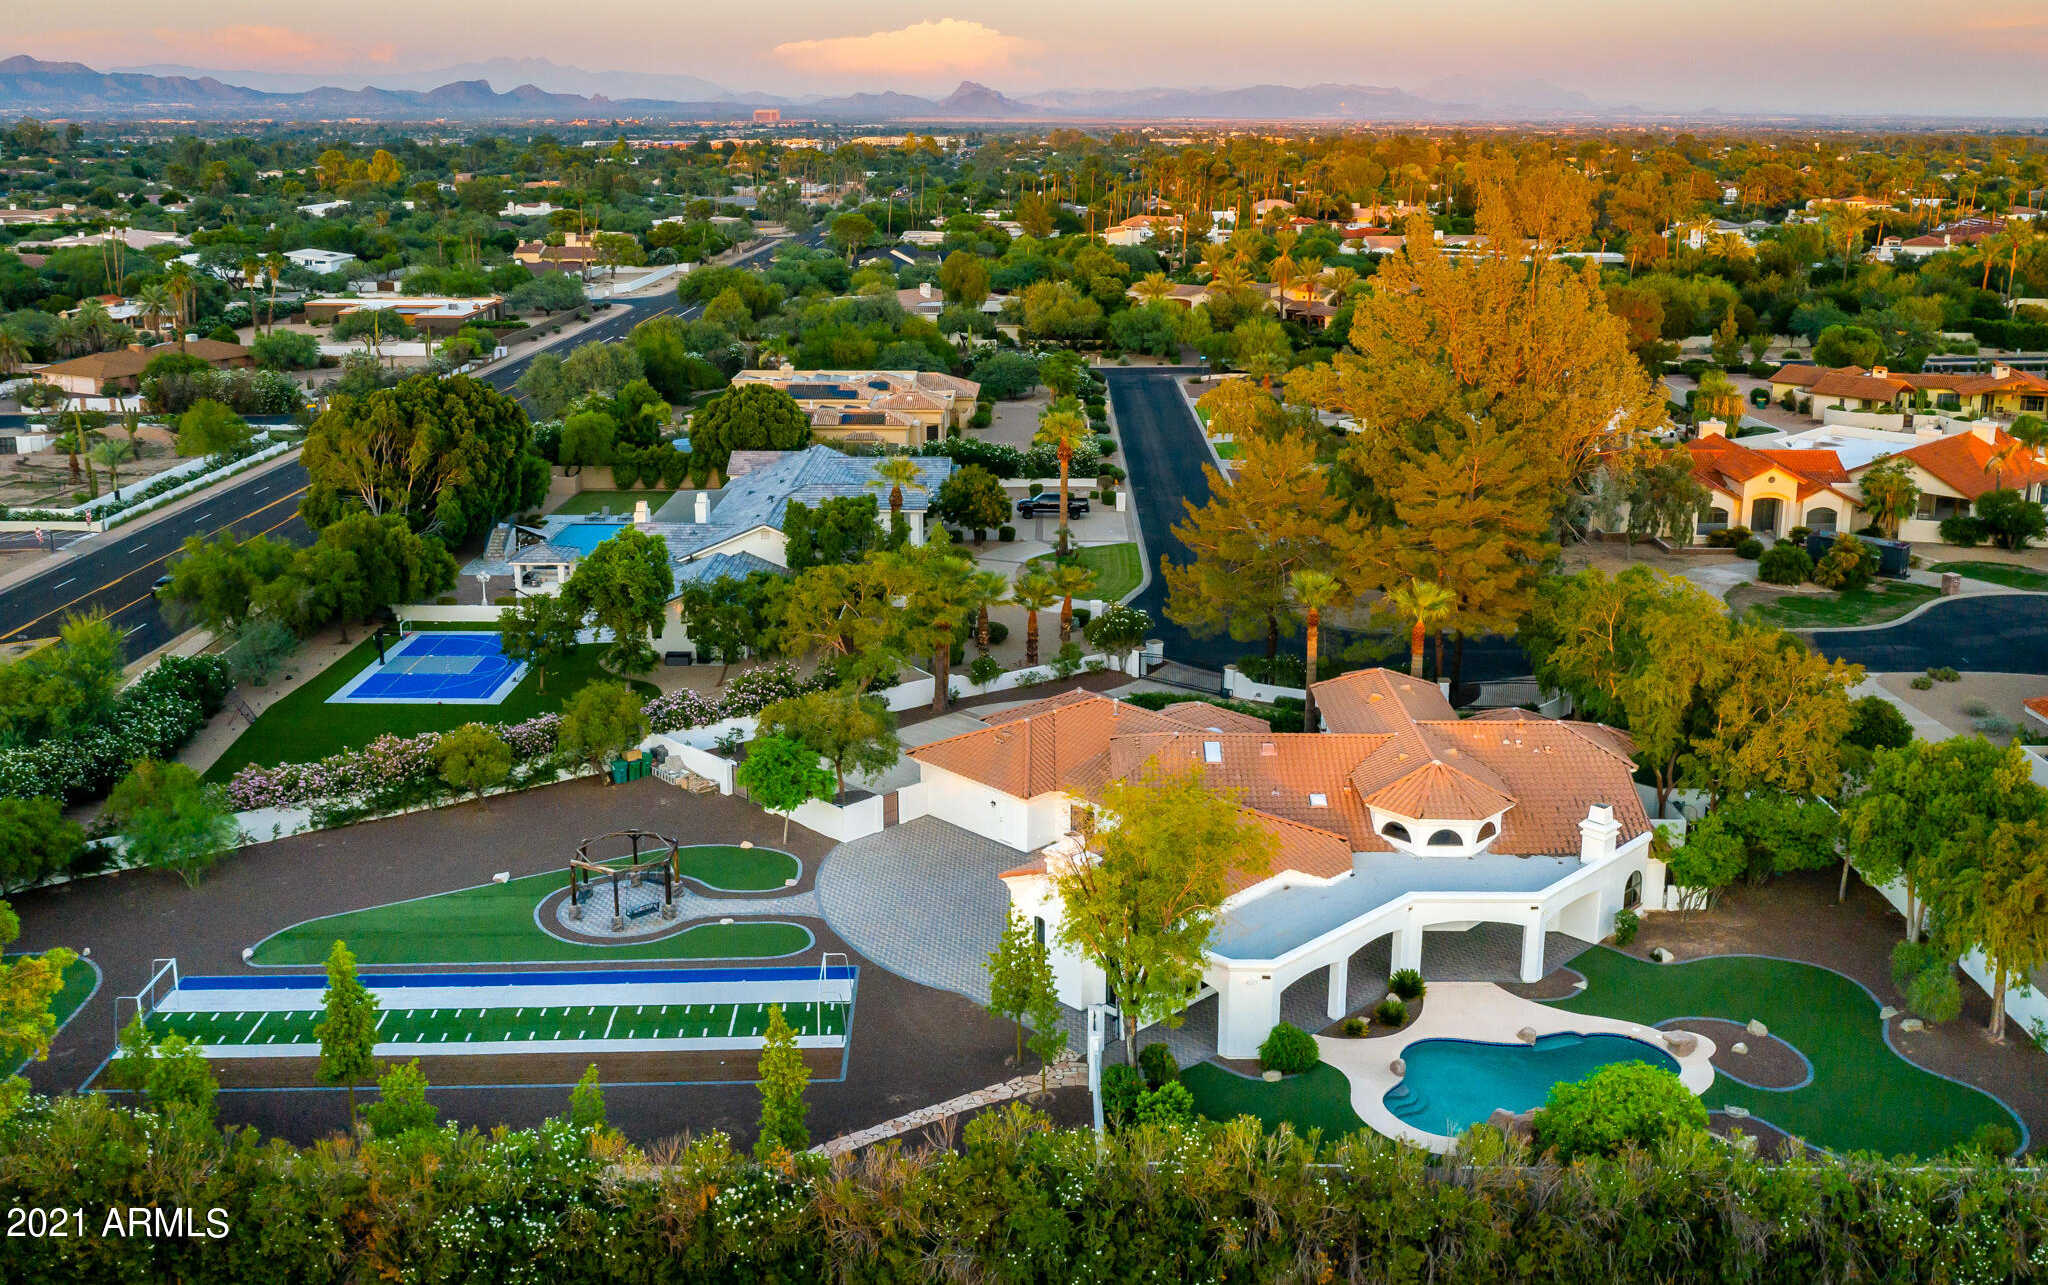 $3,275,000 - 5Br/4Ba - Home for Sale in Mountain Shadows Acres, Paradise Valley